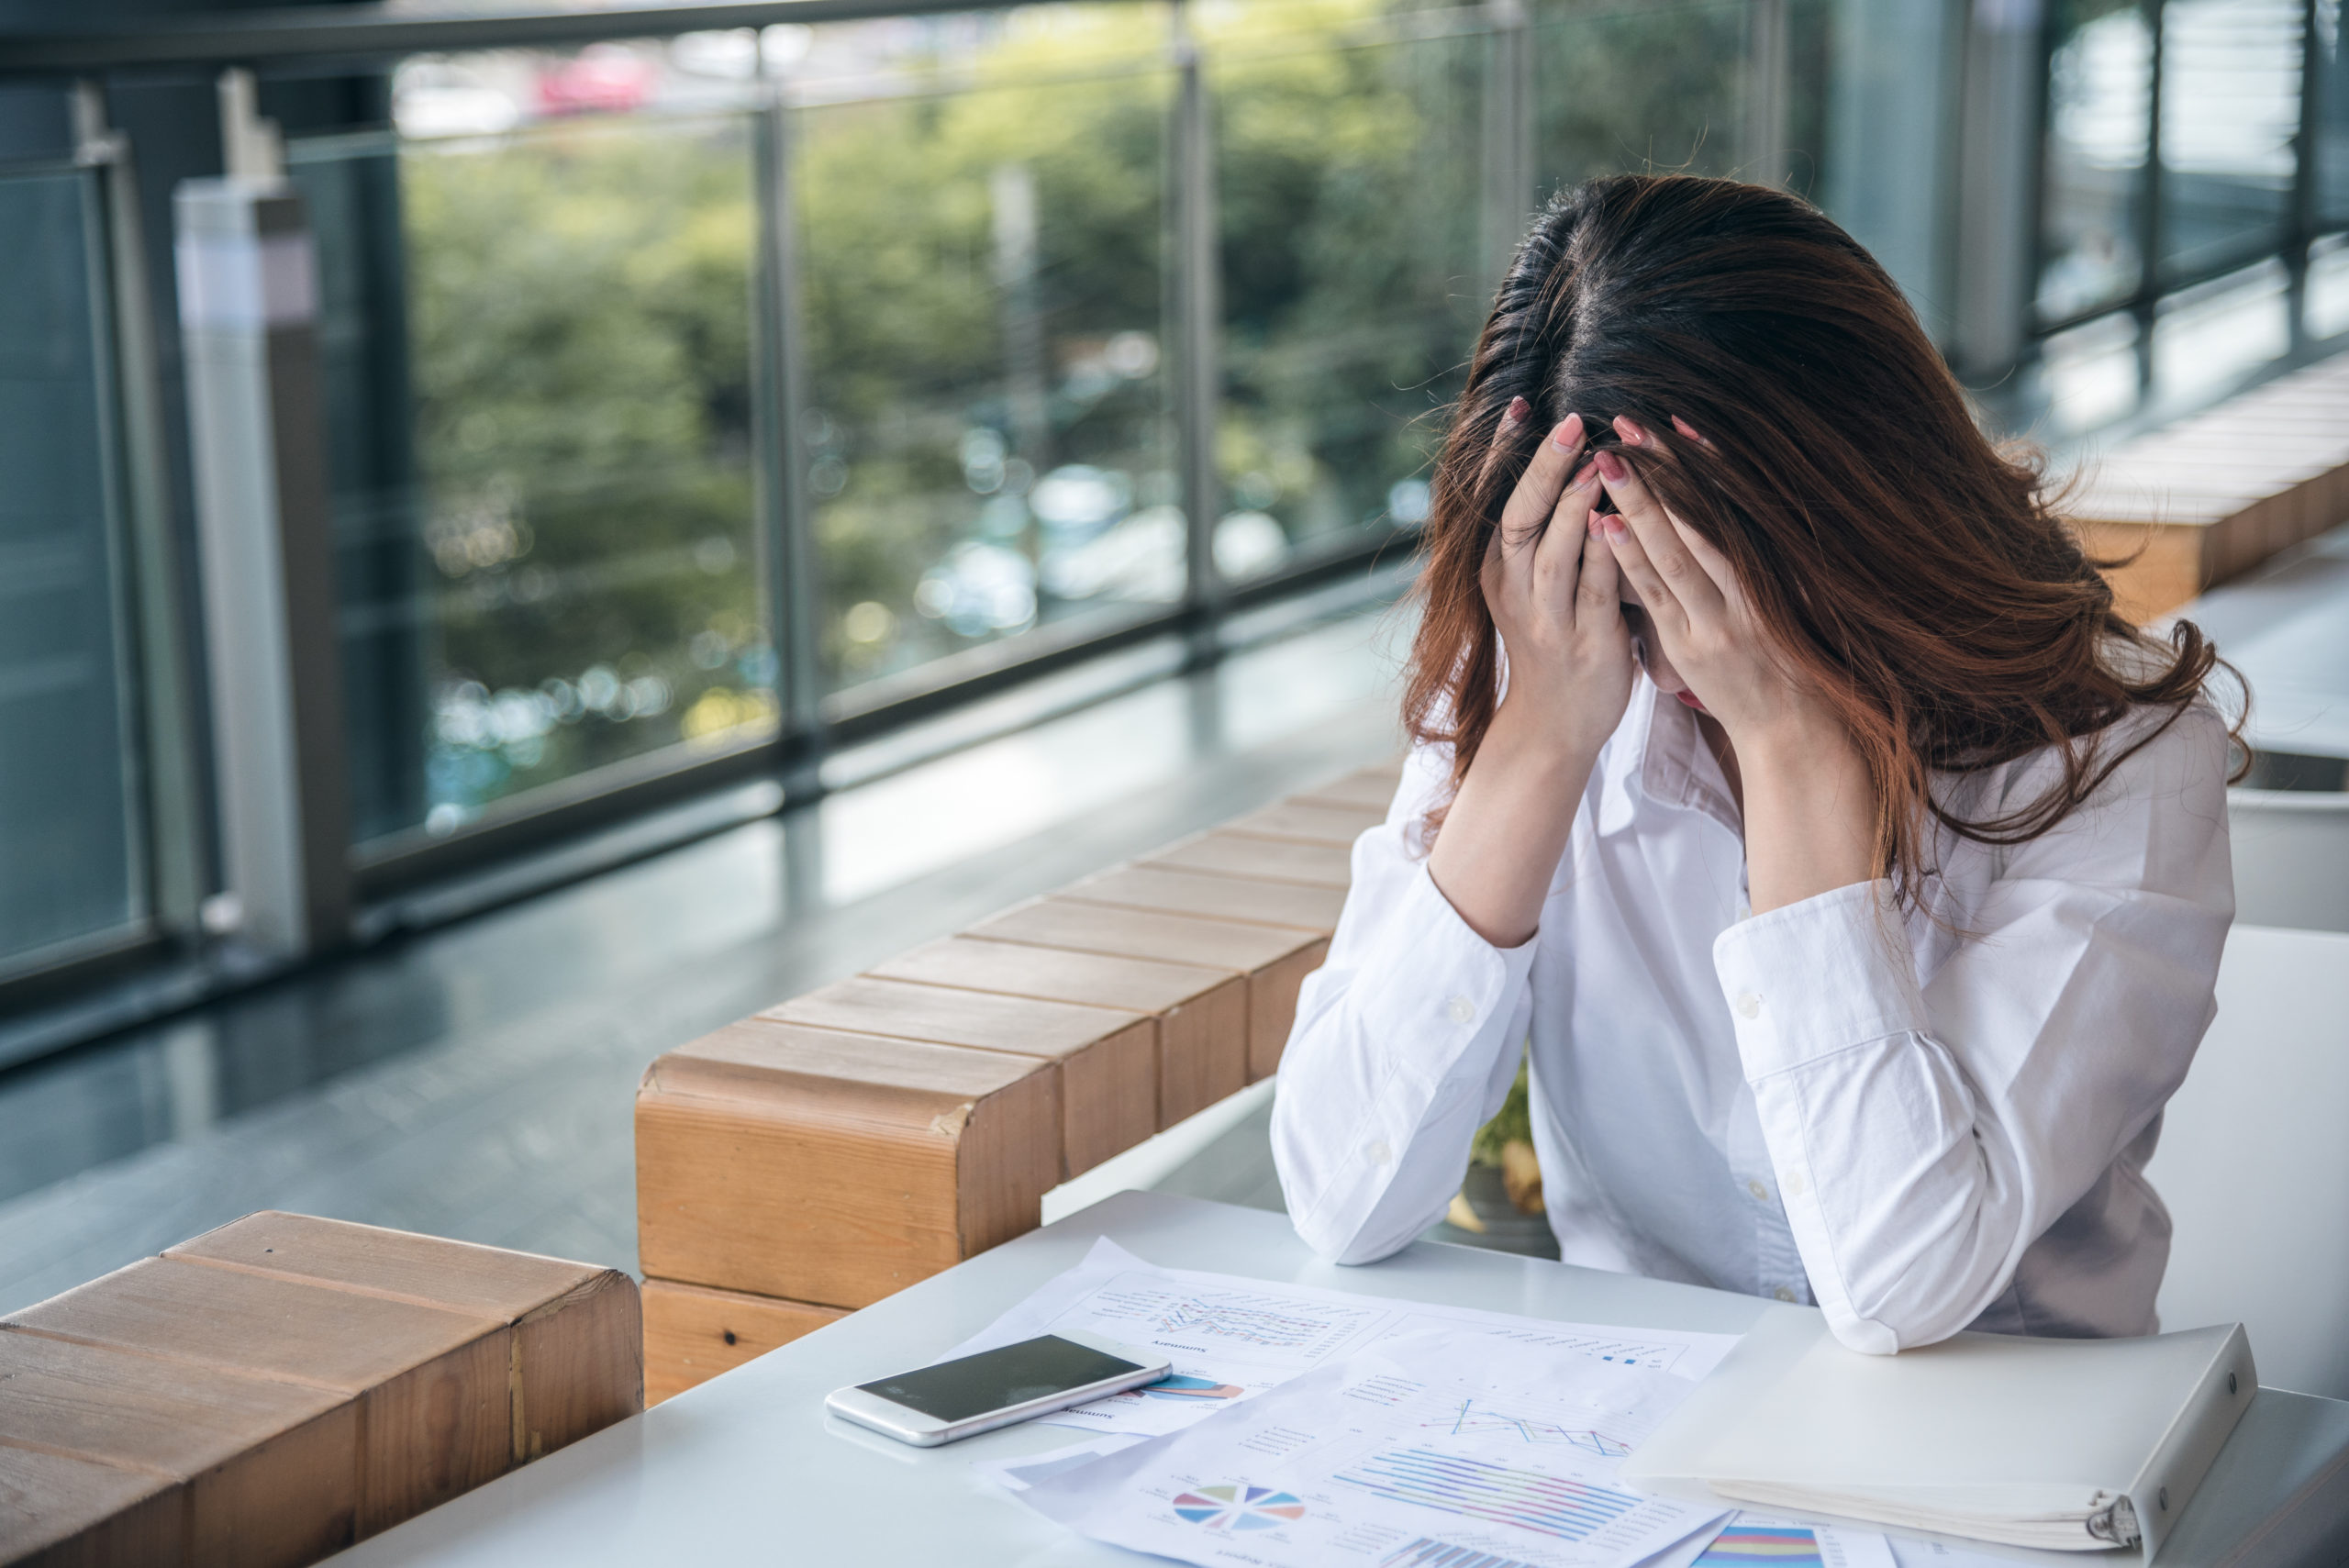 Woman struggles with her anxiety